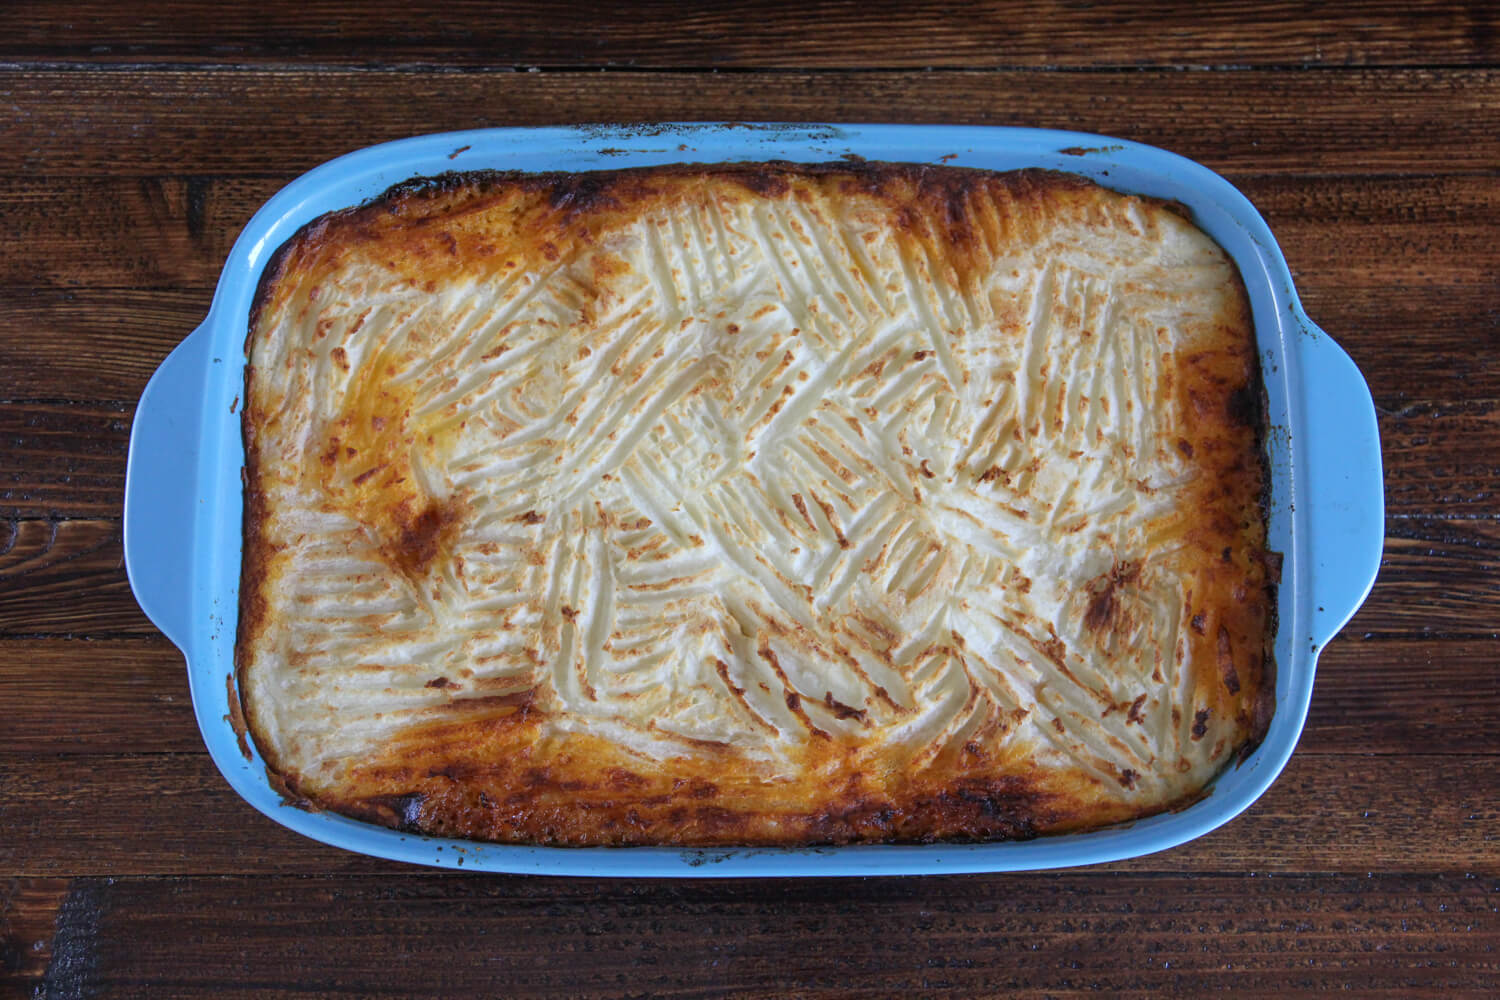 shepherds pie - the best winter comfort food